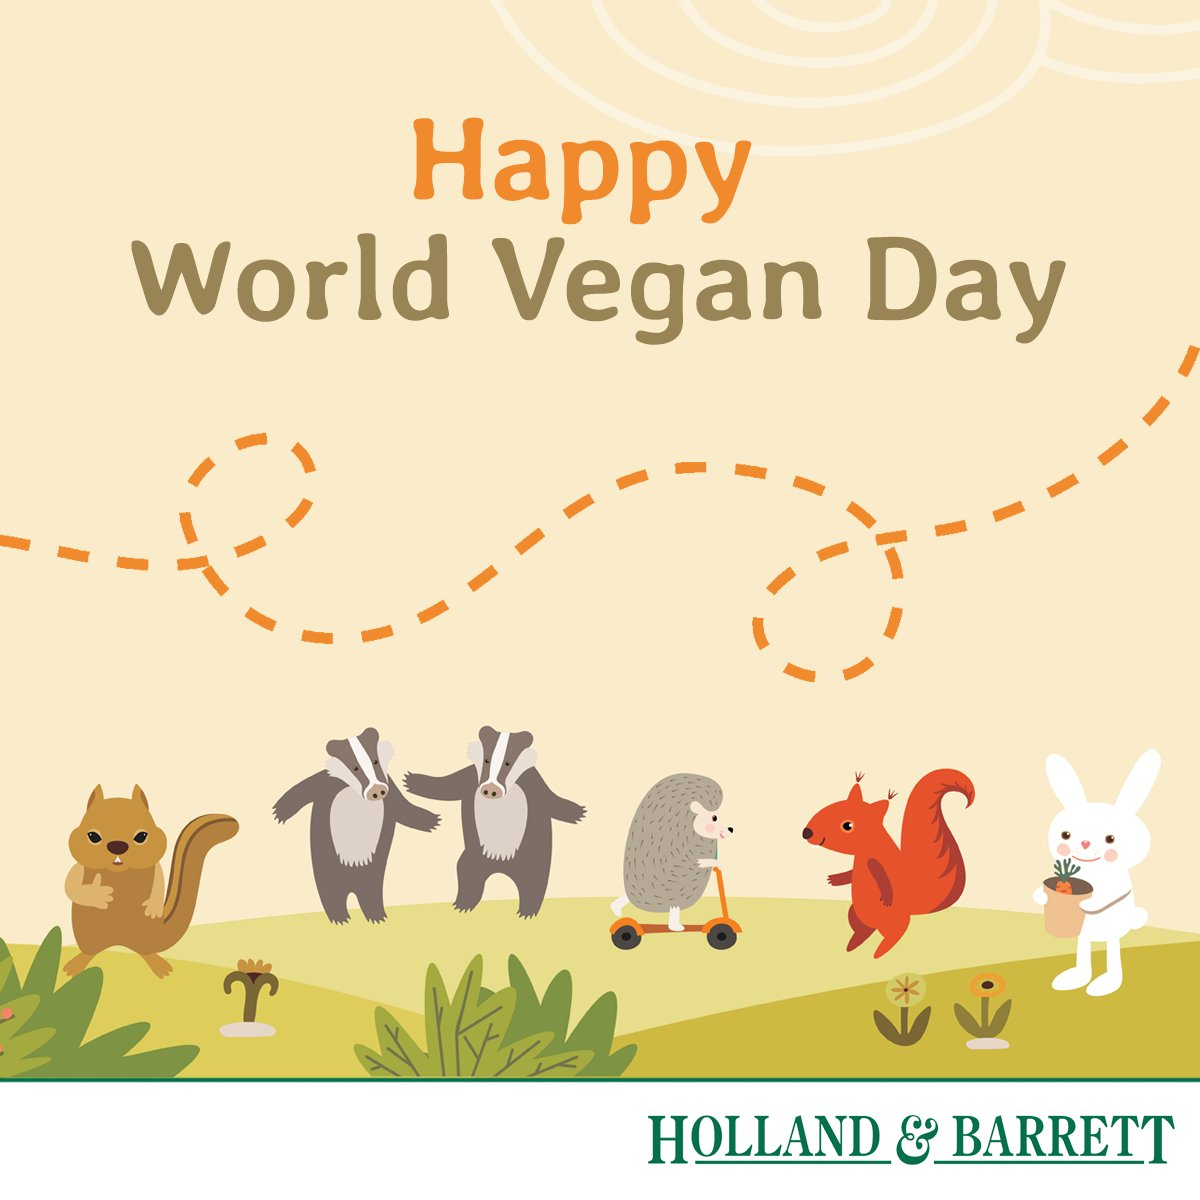 Happy #WorldVeganDay, Good Lifers! We'll be bringing you our top vegan product picks today, so stay tuned! https://t.co/iPVSb6t6Kj